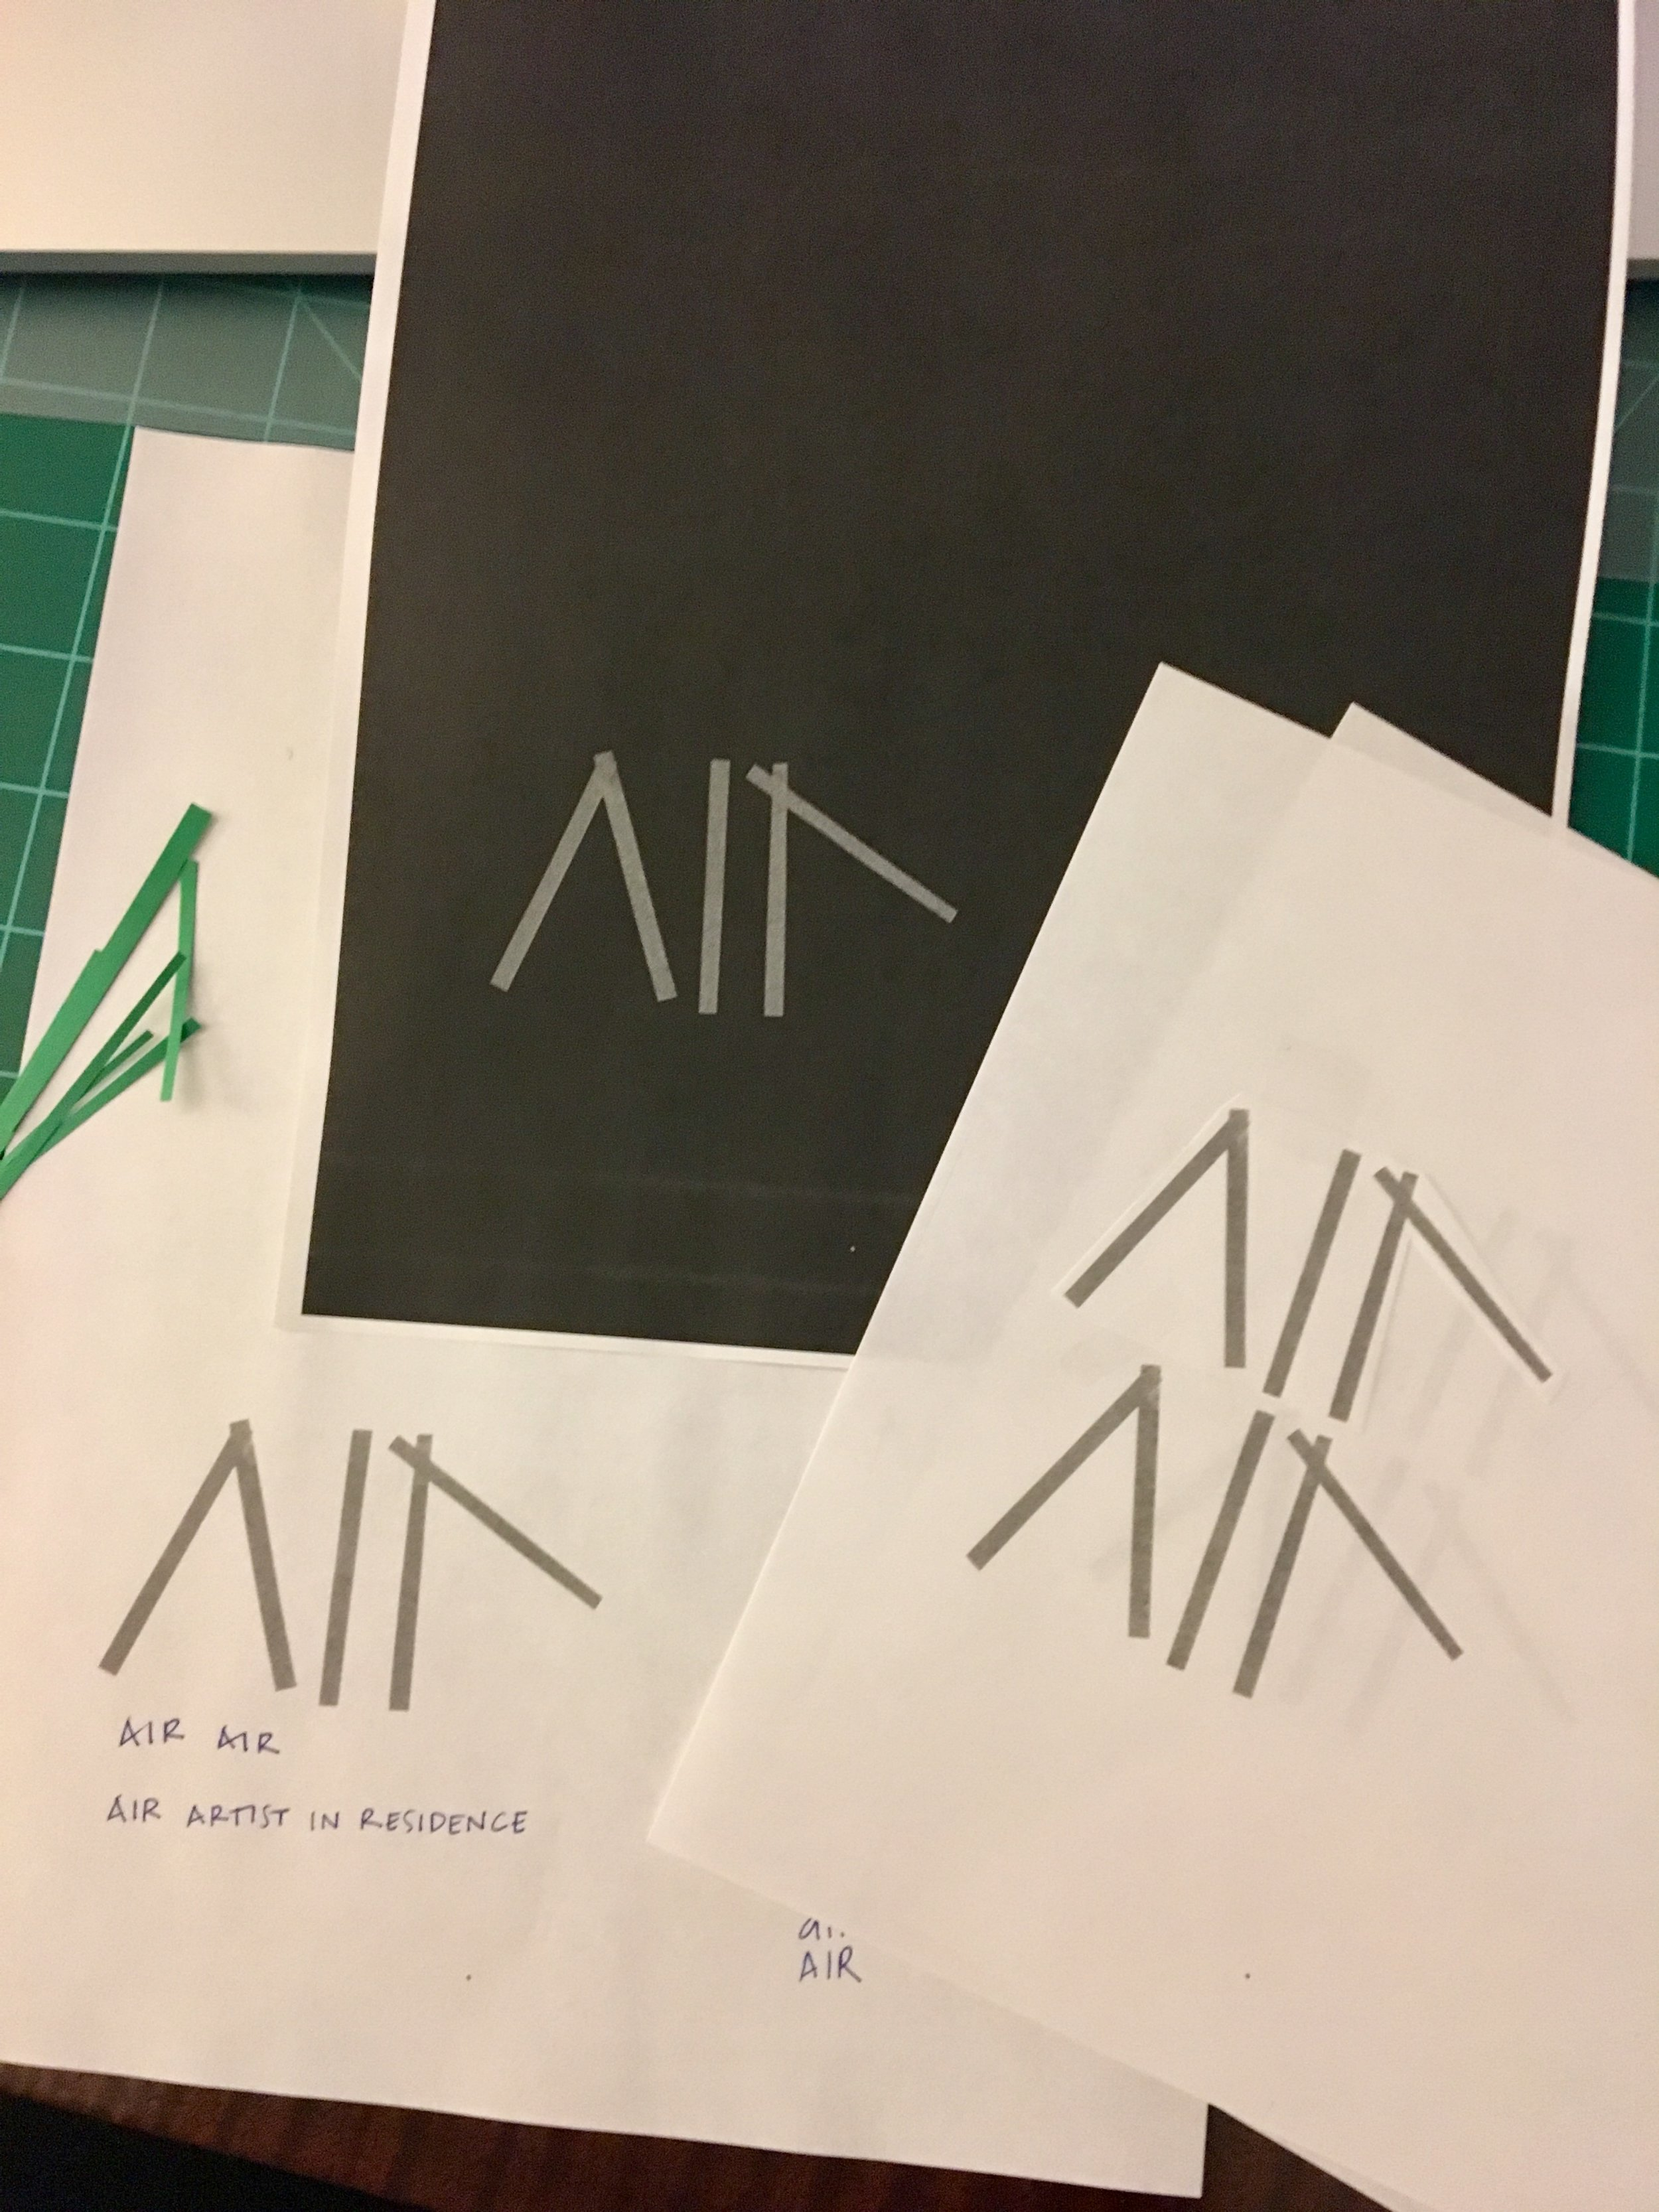 Air Air // logo development with cut paper, in progress